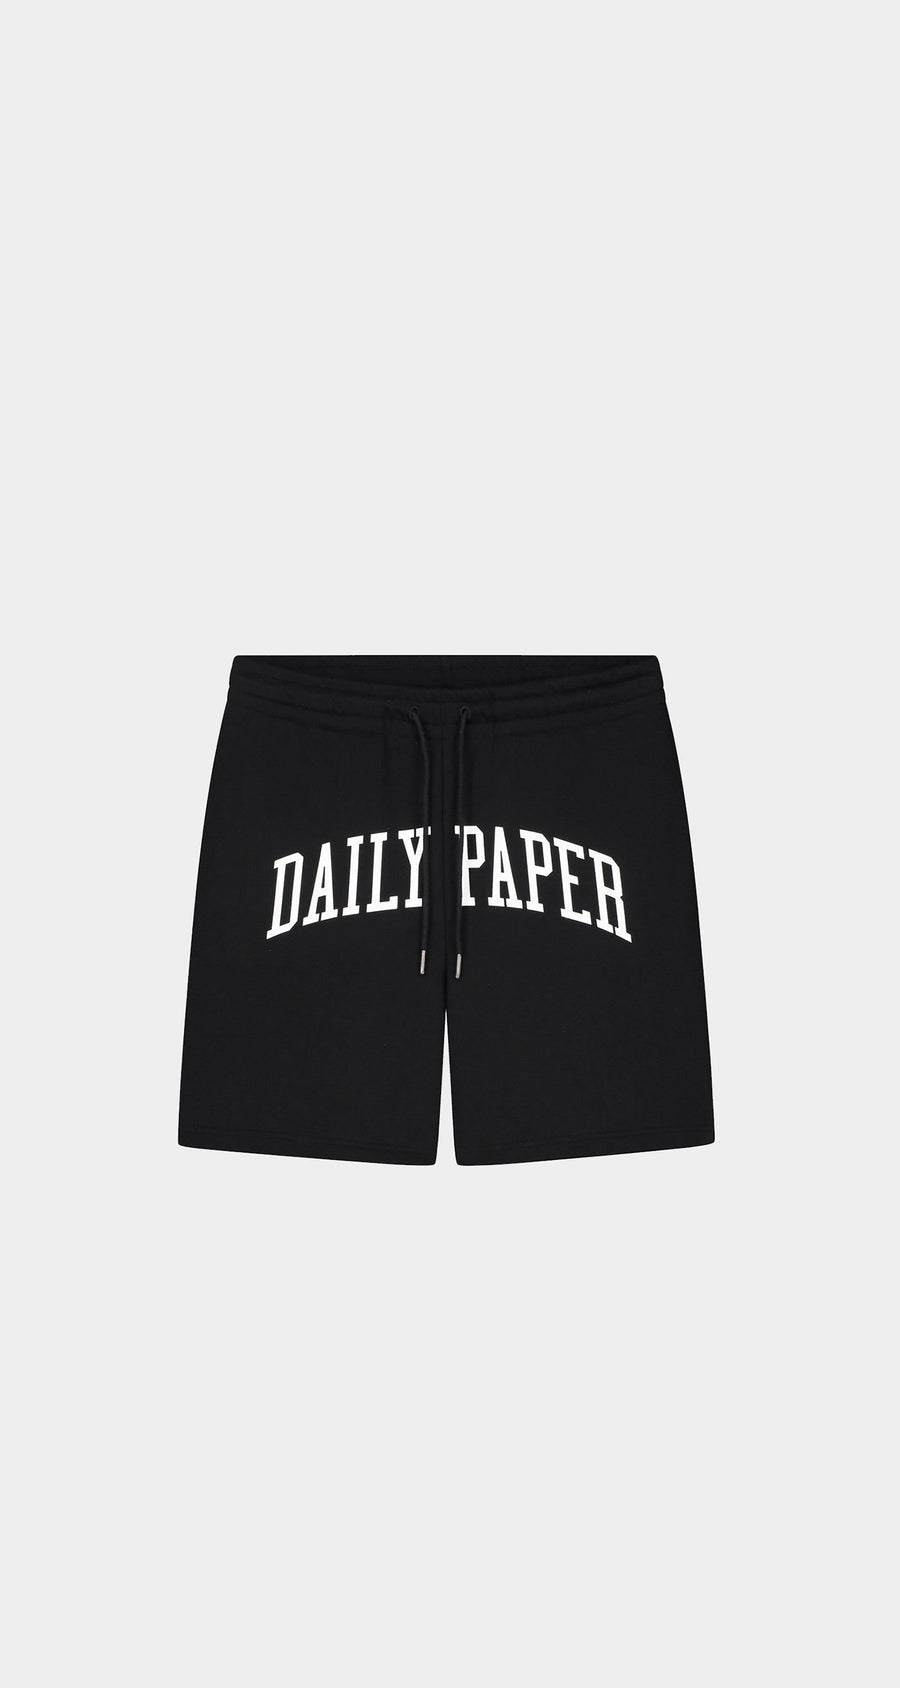 Daily Paper - Black Shorts - Women Front